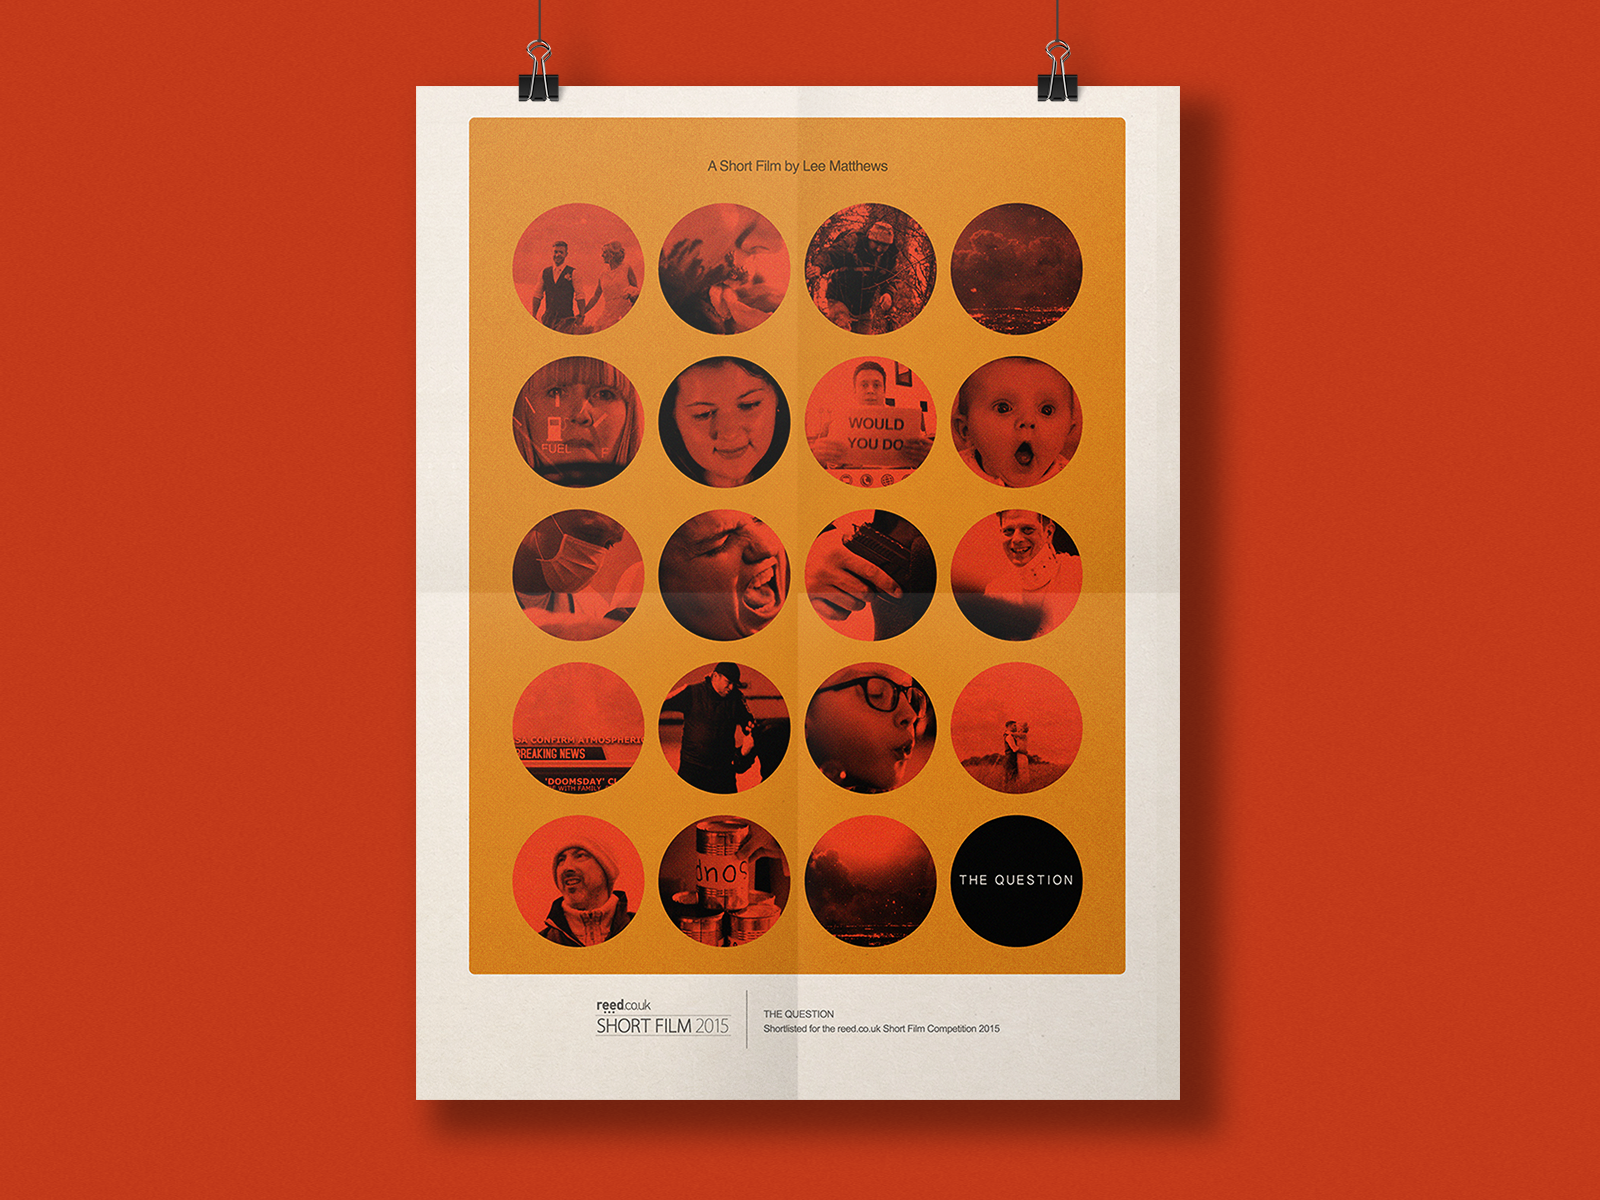 reed.co.uk Short Film Posters (04)